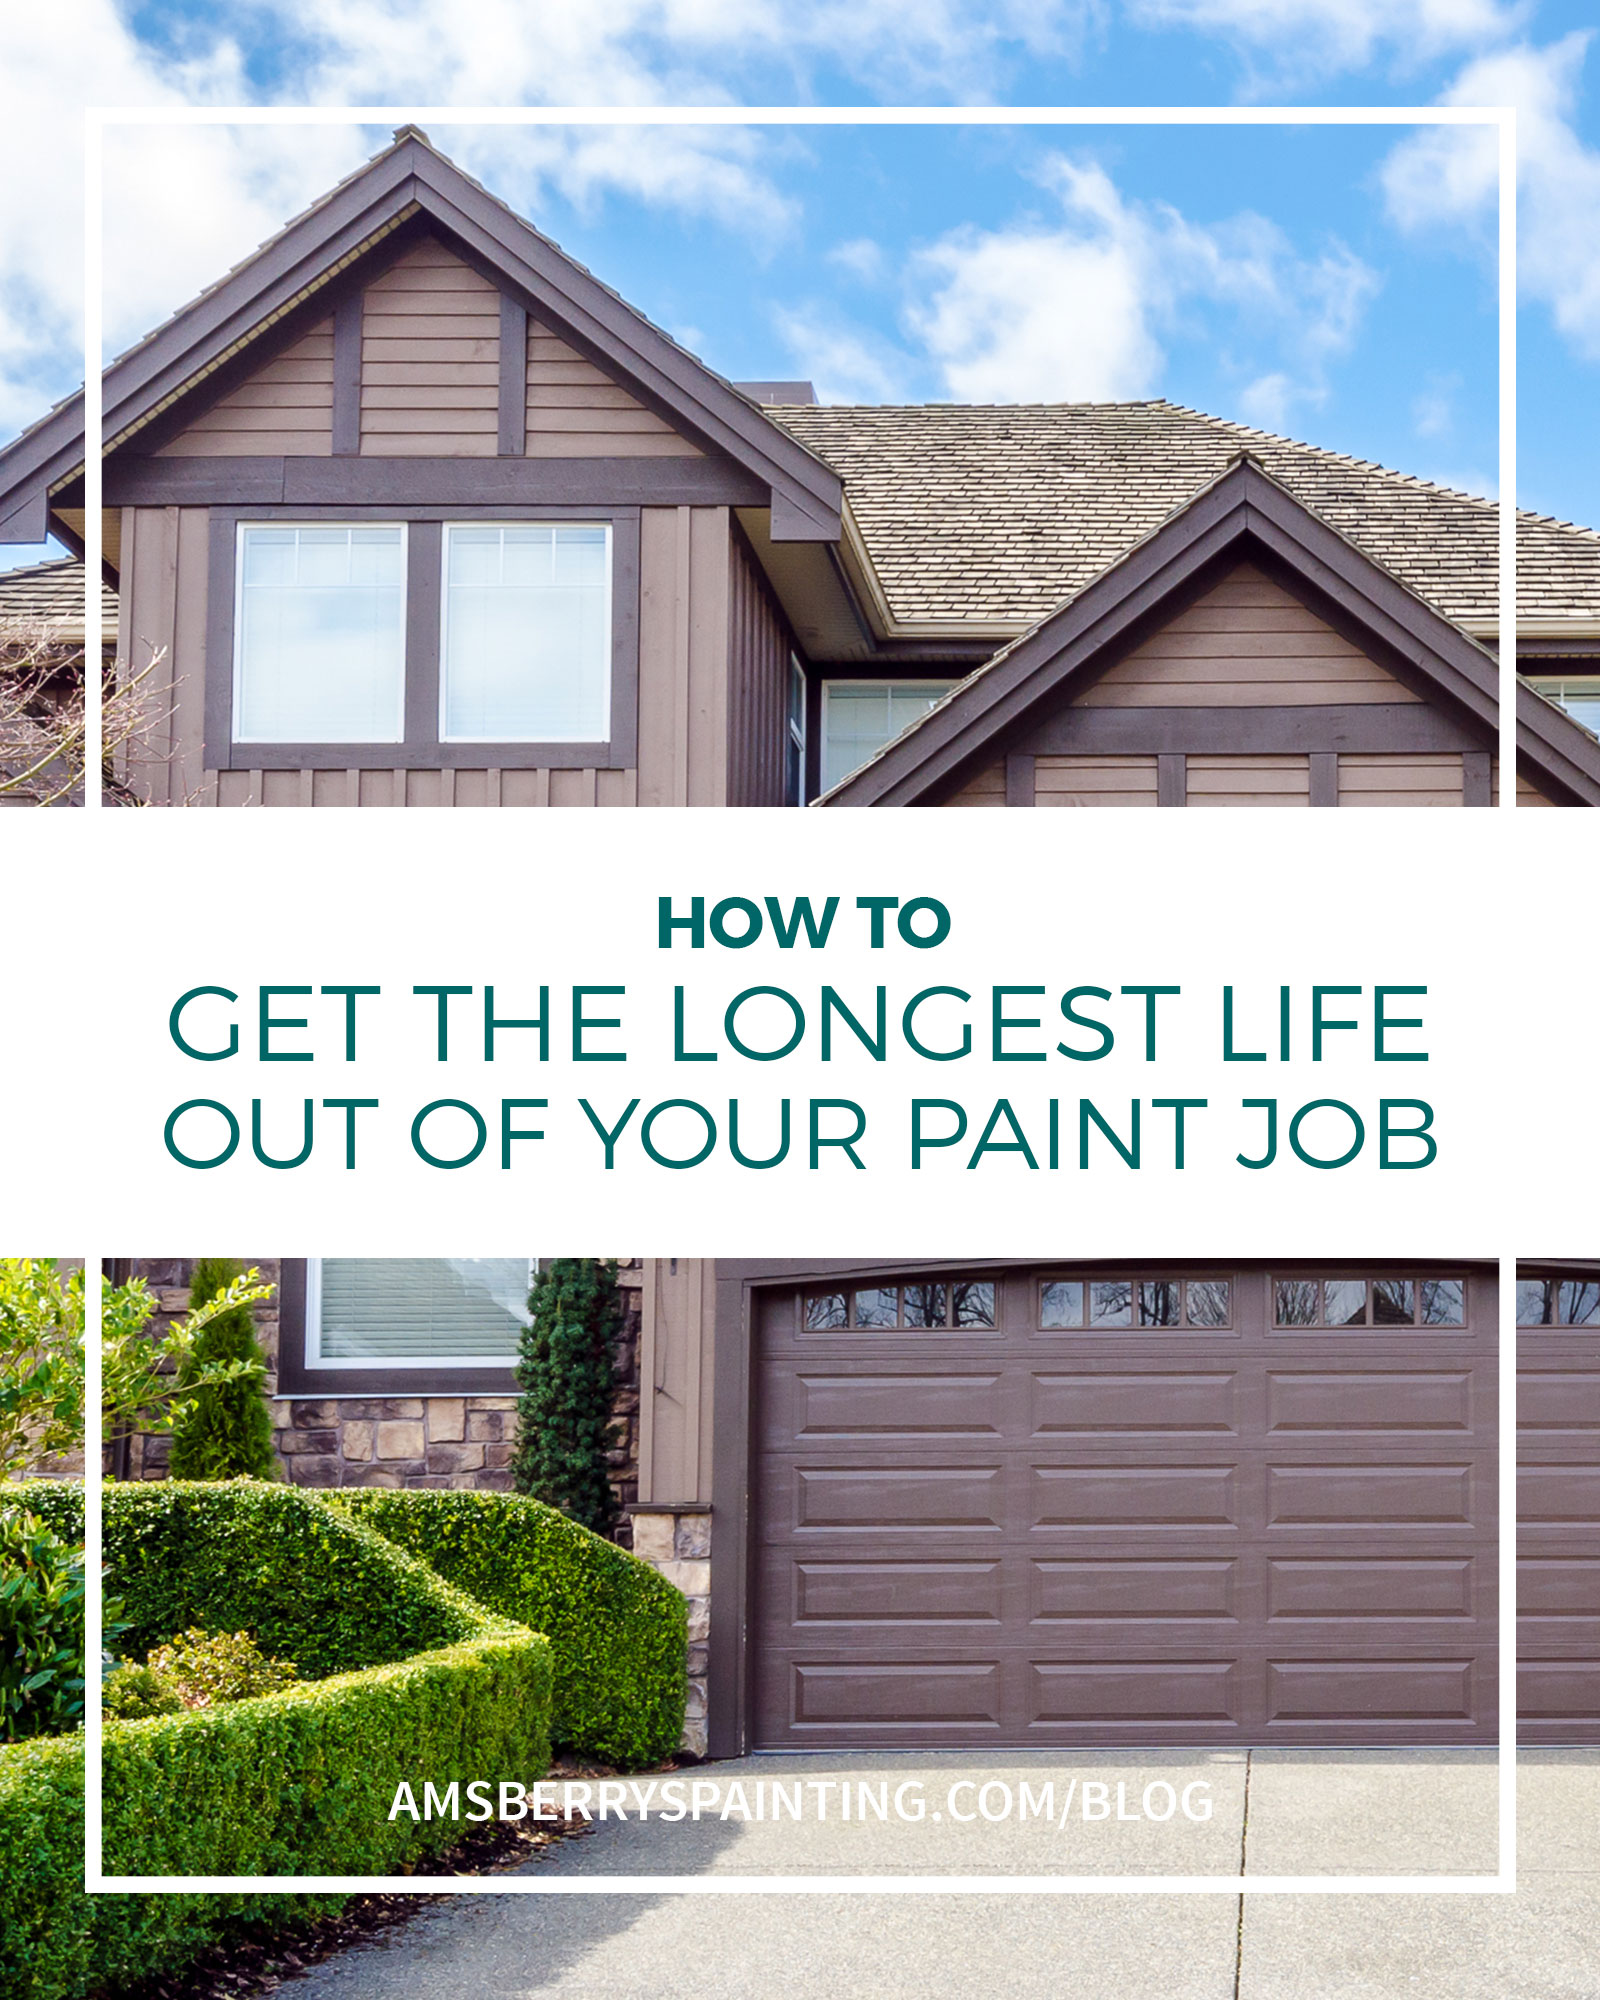 How to get the longest life out of your paint job